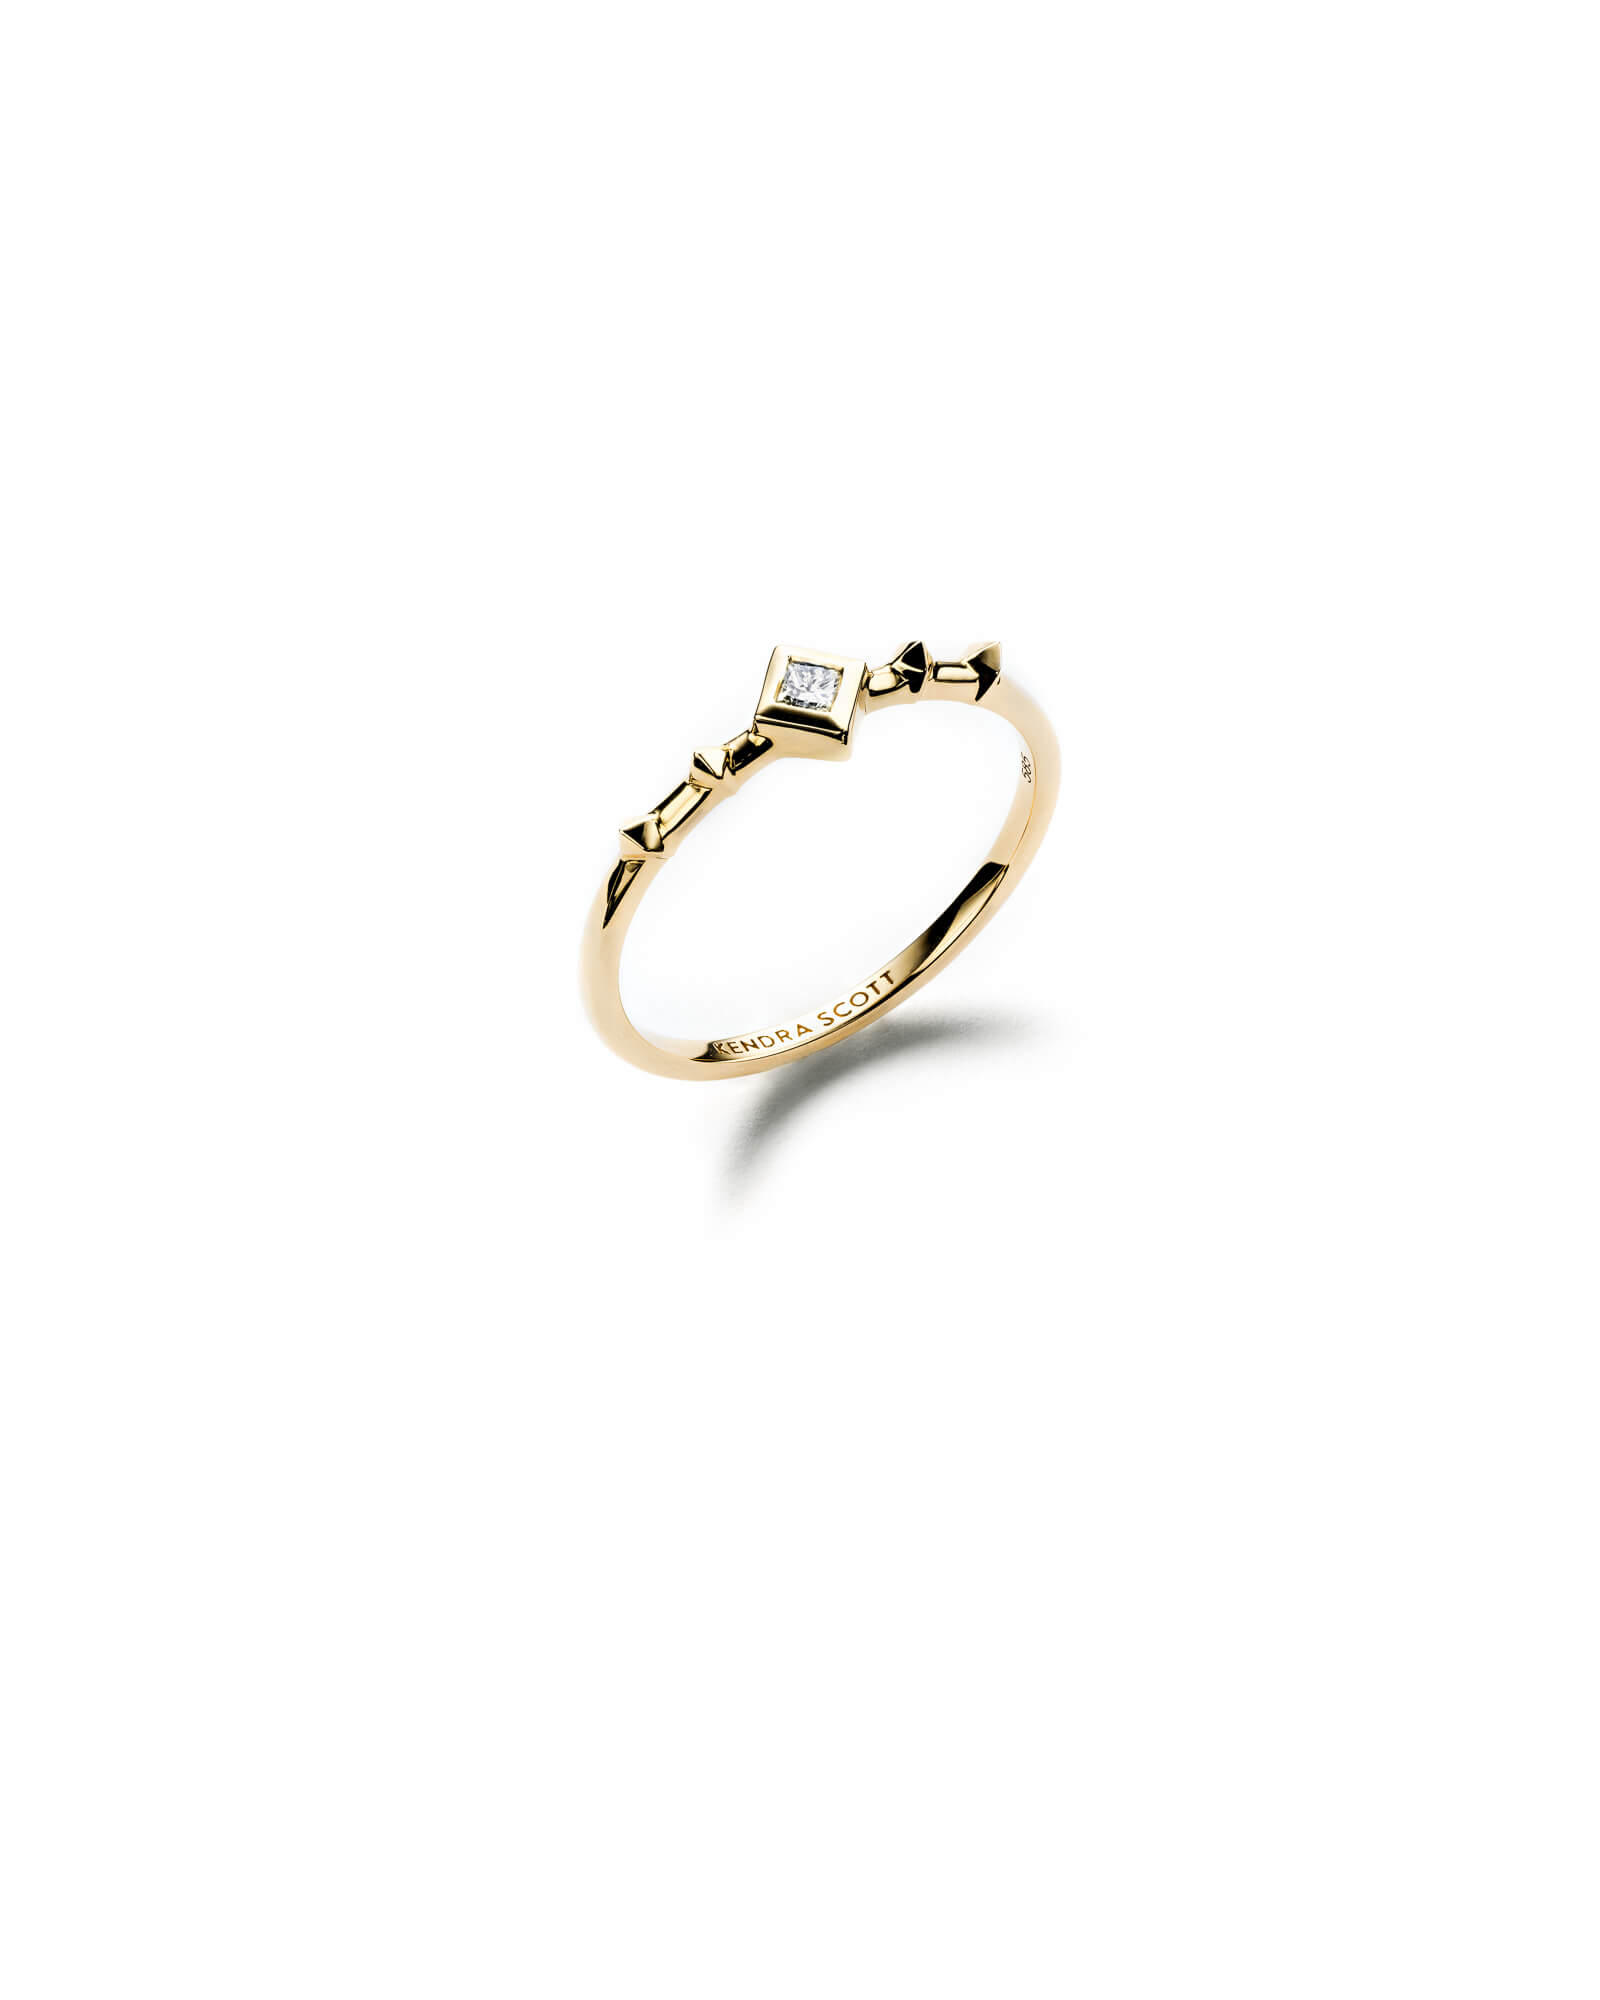 Wave Band Ring in 14k Yellow Gold